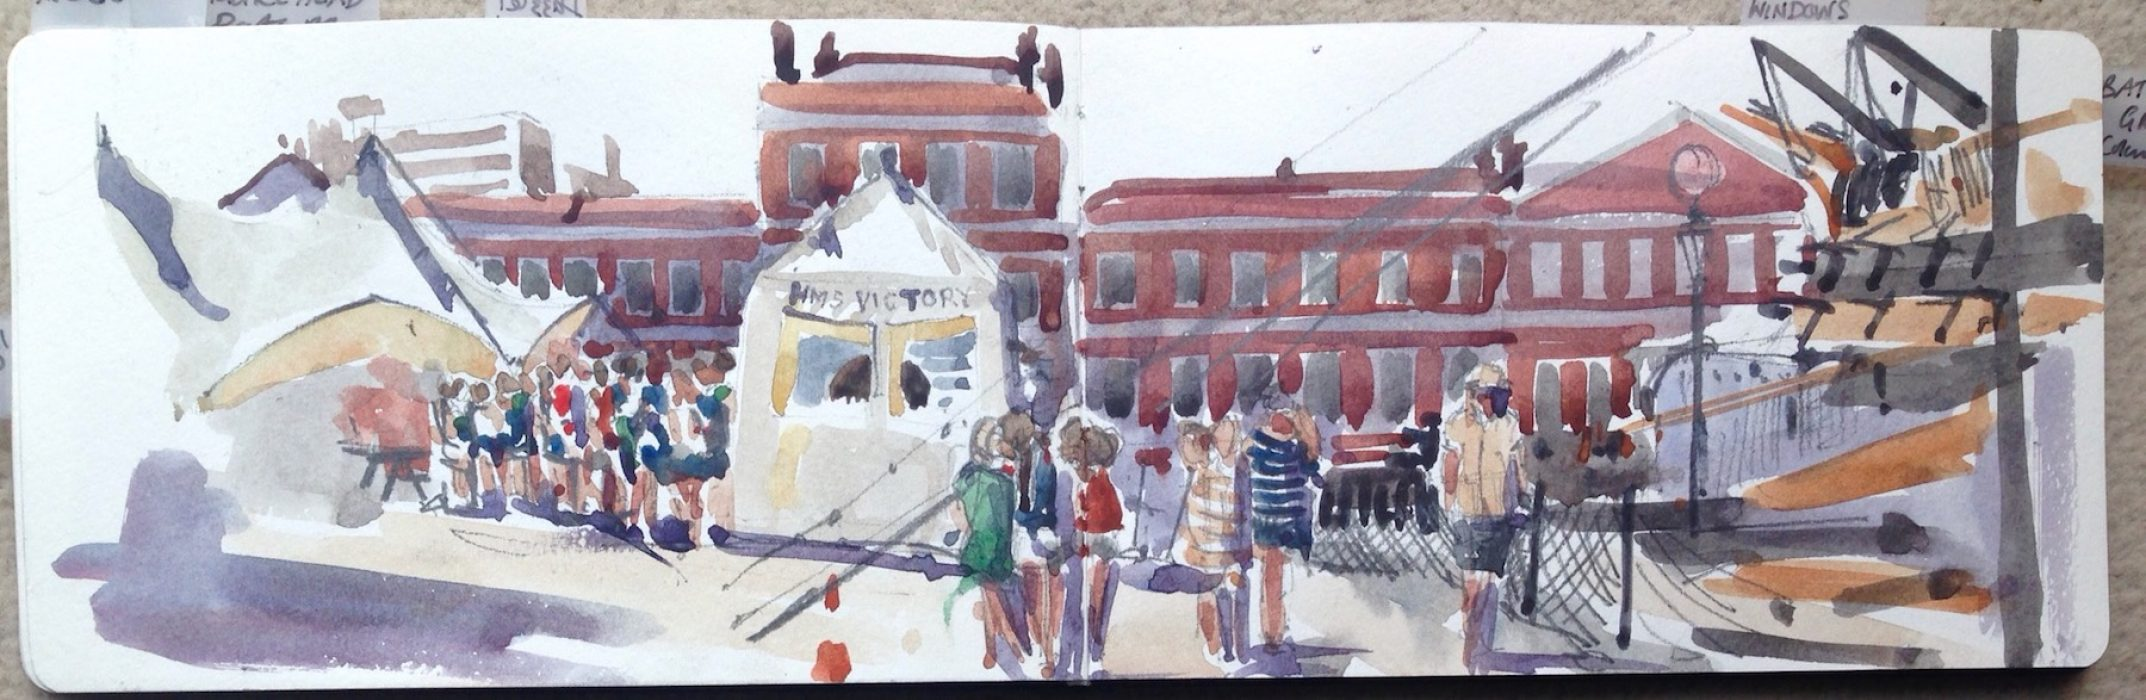 Queue for HMS Victory Sunday Times Watercolour Competition 2016 12x40cms